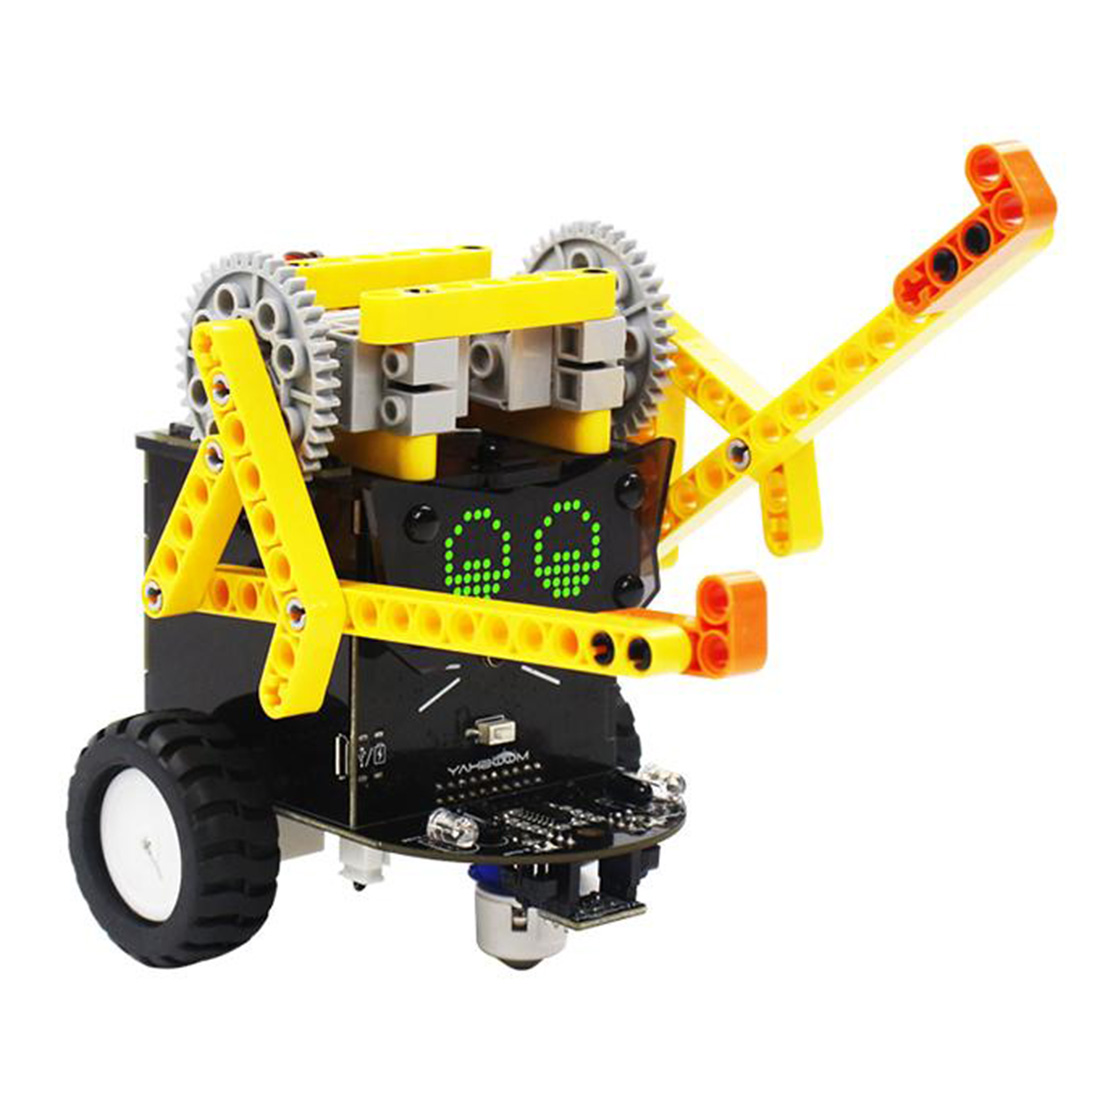 Fighting Version Omibox Scratch Programmable Robot Car Kit Programmable Toy For Kids Boys Student Gift  High Quality 2019